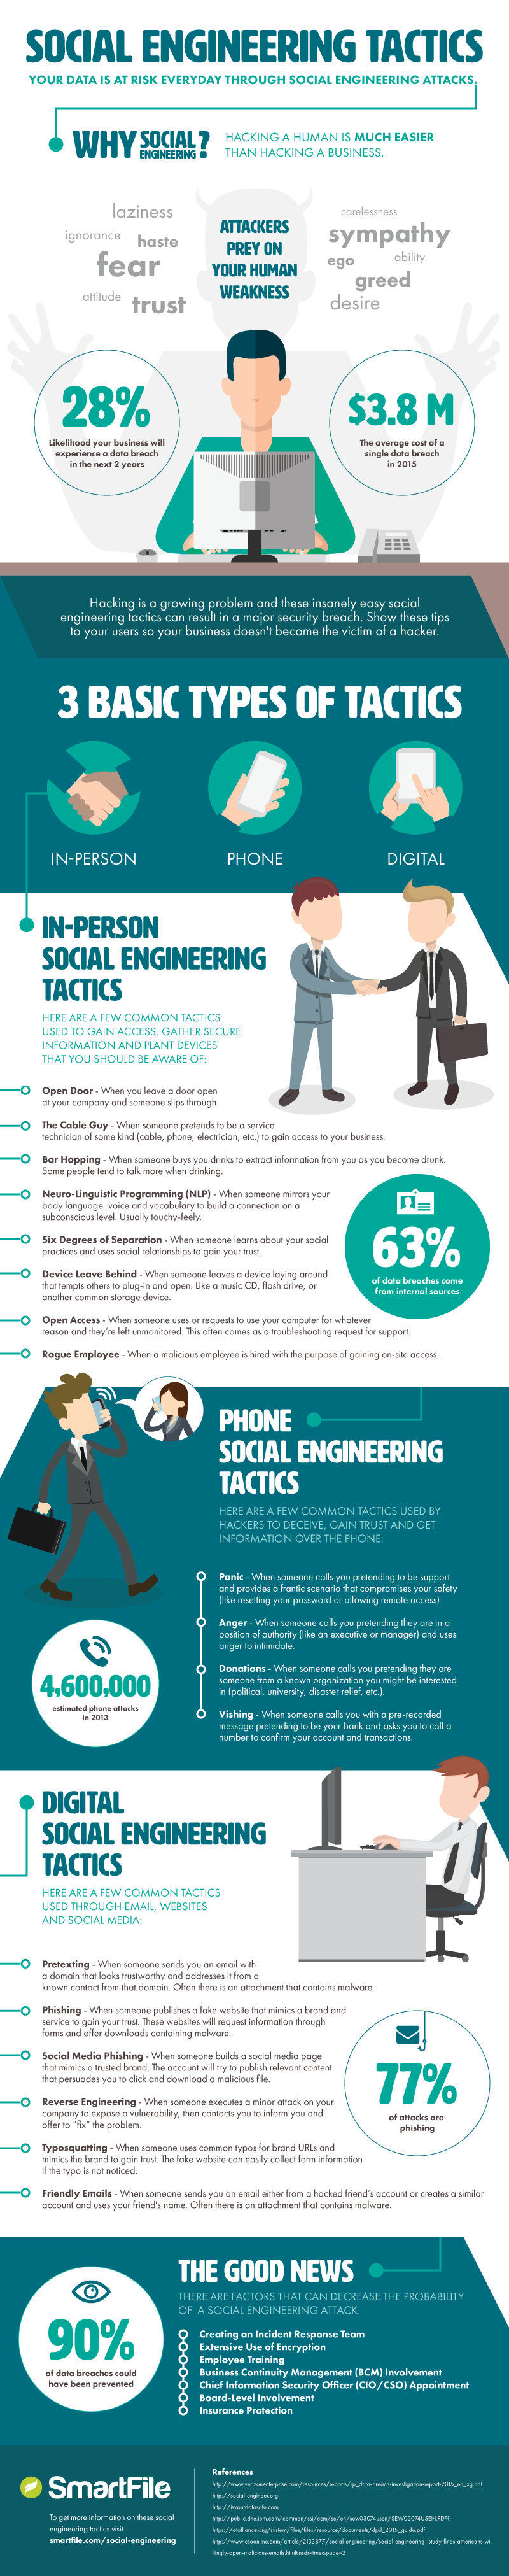 SmartFile Social Engineering Infographic